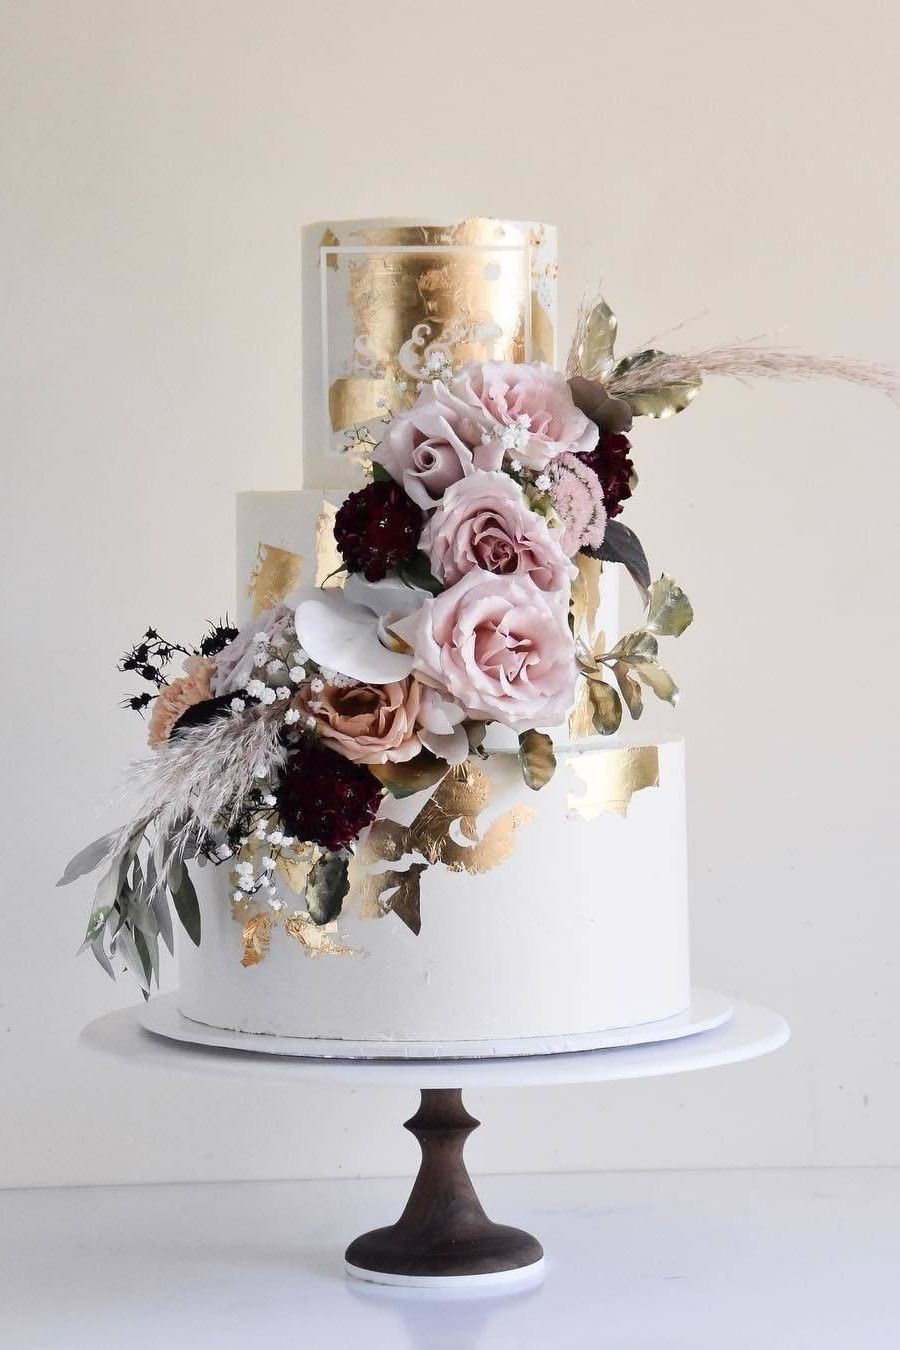 floral and metallic white chic rust wedding cake for autumn wedding ideas